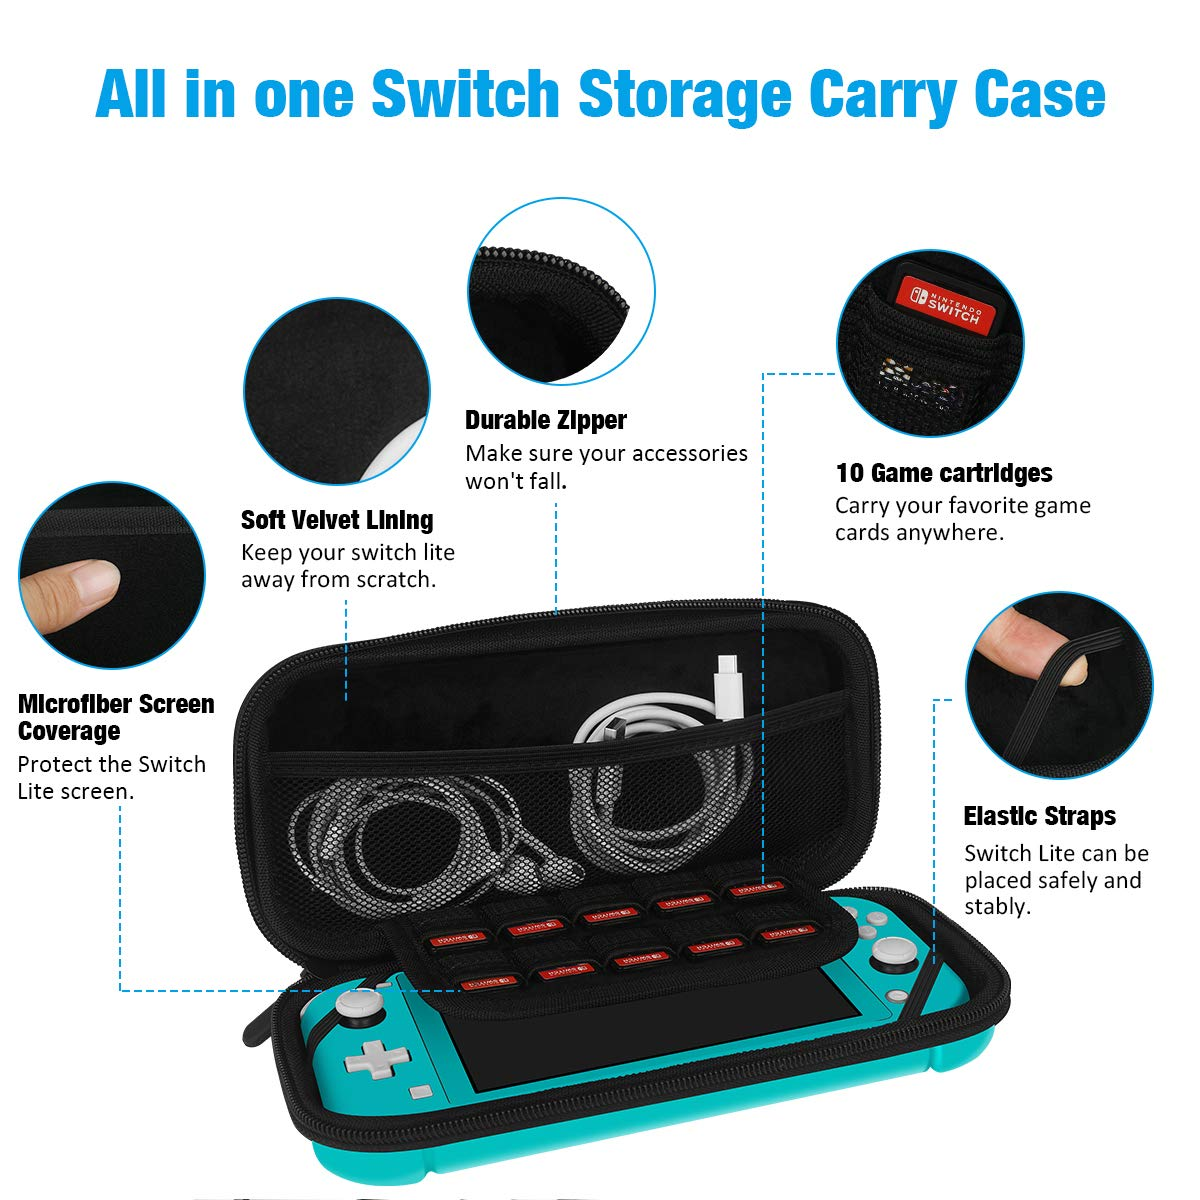 Carrying Case for Nintendo Switch Lite, Y Team Switch Lite Case with 10 Game Cartridge Storage Holders and 1 Tempered Screen Protector for Nintendo Switch Lite Console and Accessories (Turquoise)